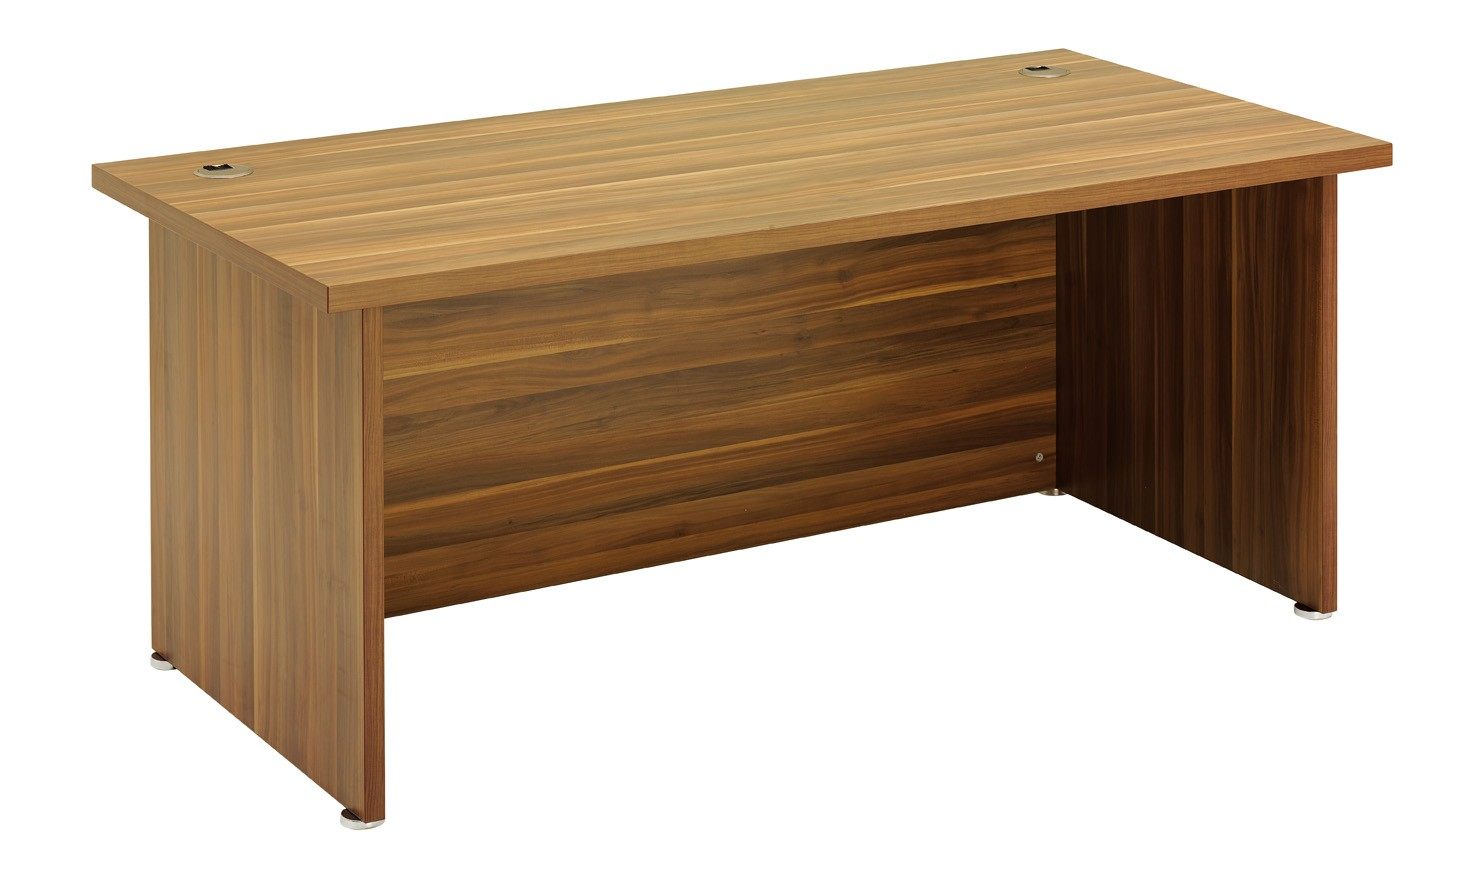 Doctor workstation tables hb - Walnut office desk ...